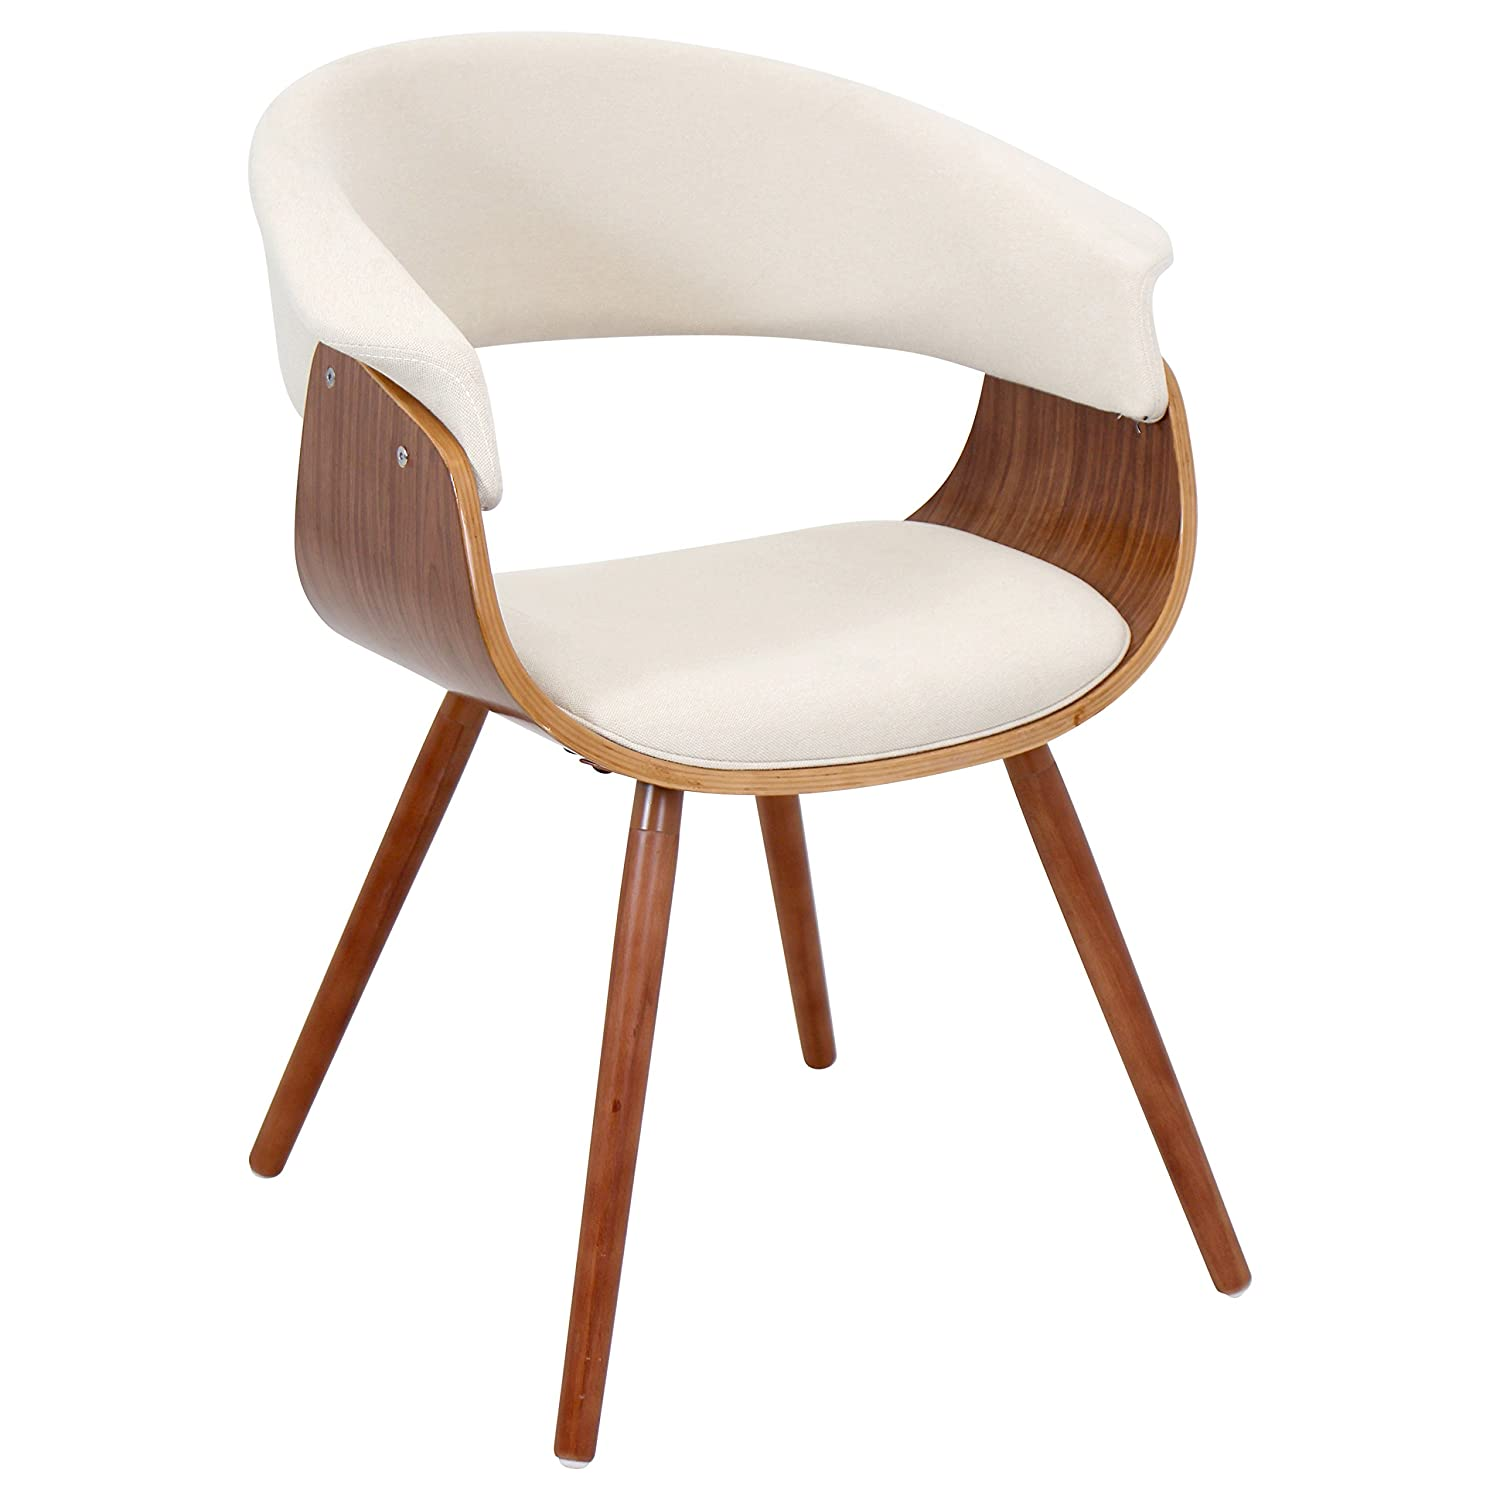 Wonderful Amazon.com   LumiSource Walnut/Cream Vintage Mod Accent Chair CHR JY VMO WL    Chairs